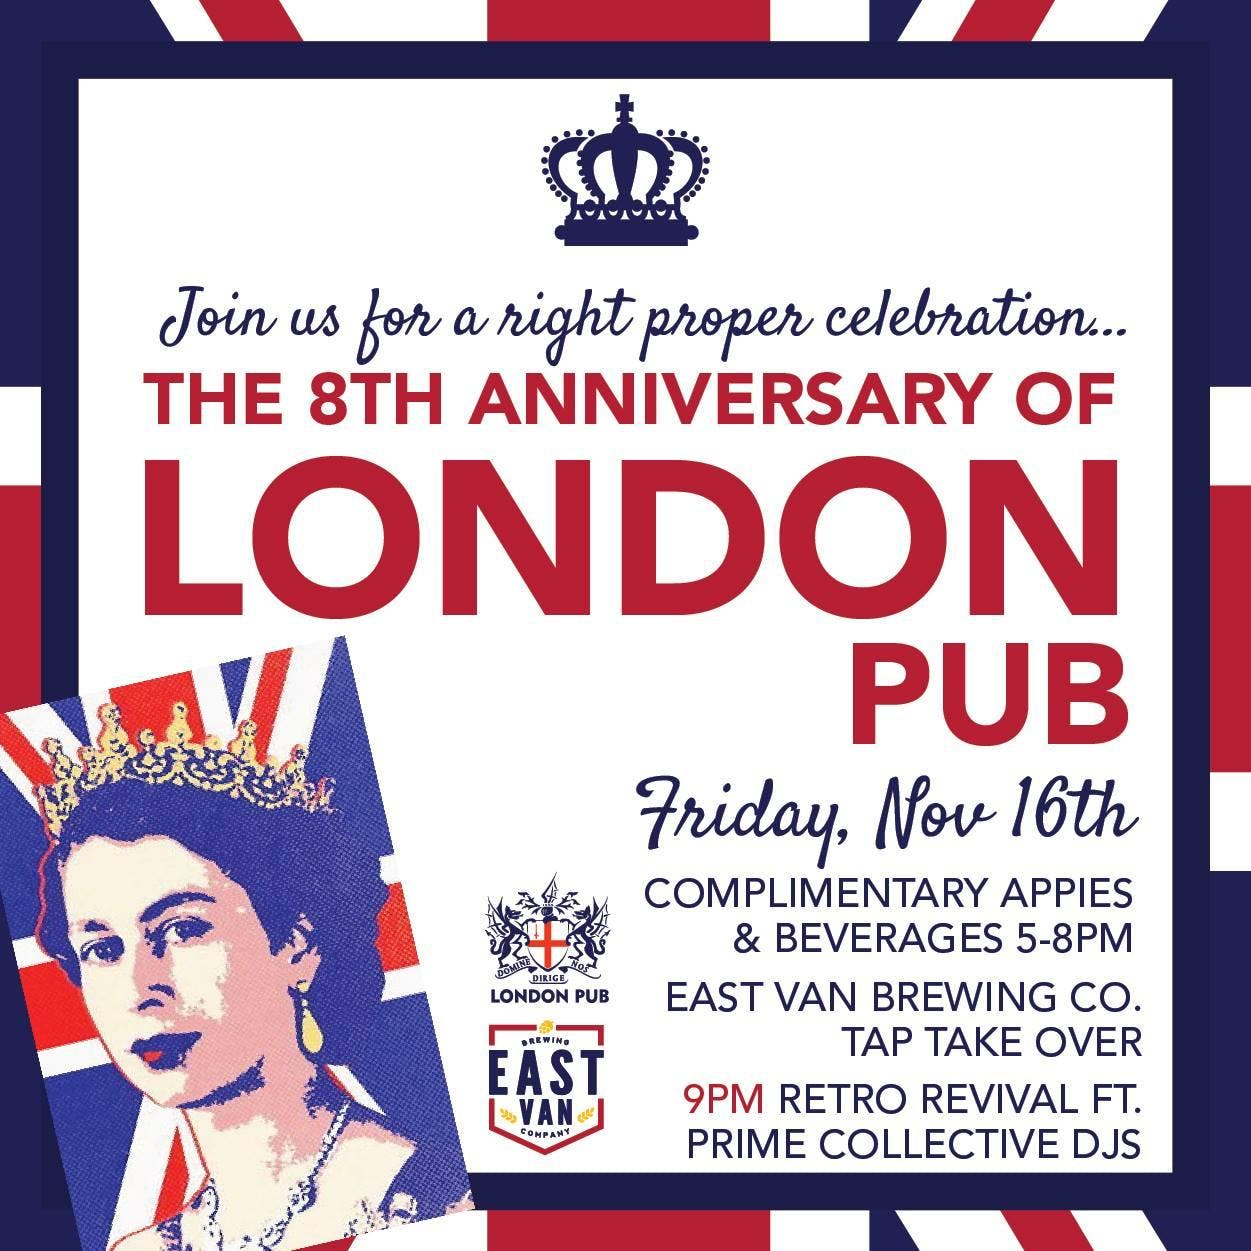 London Pub 8th Anniversary Party